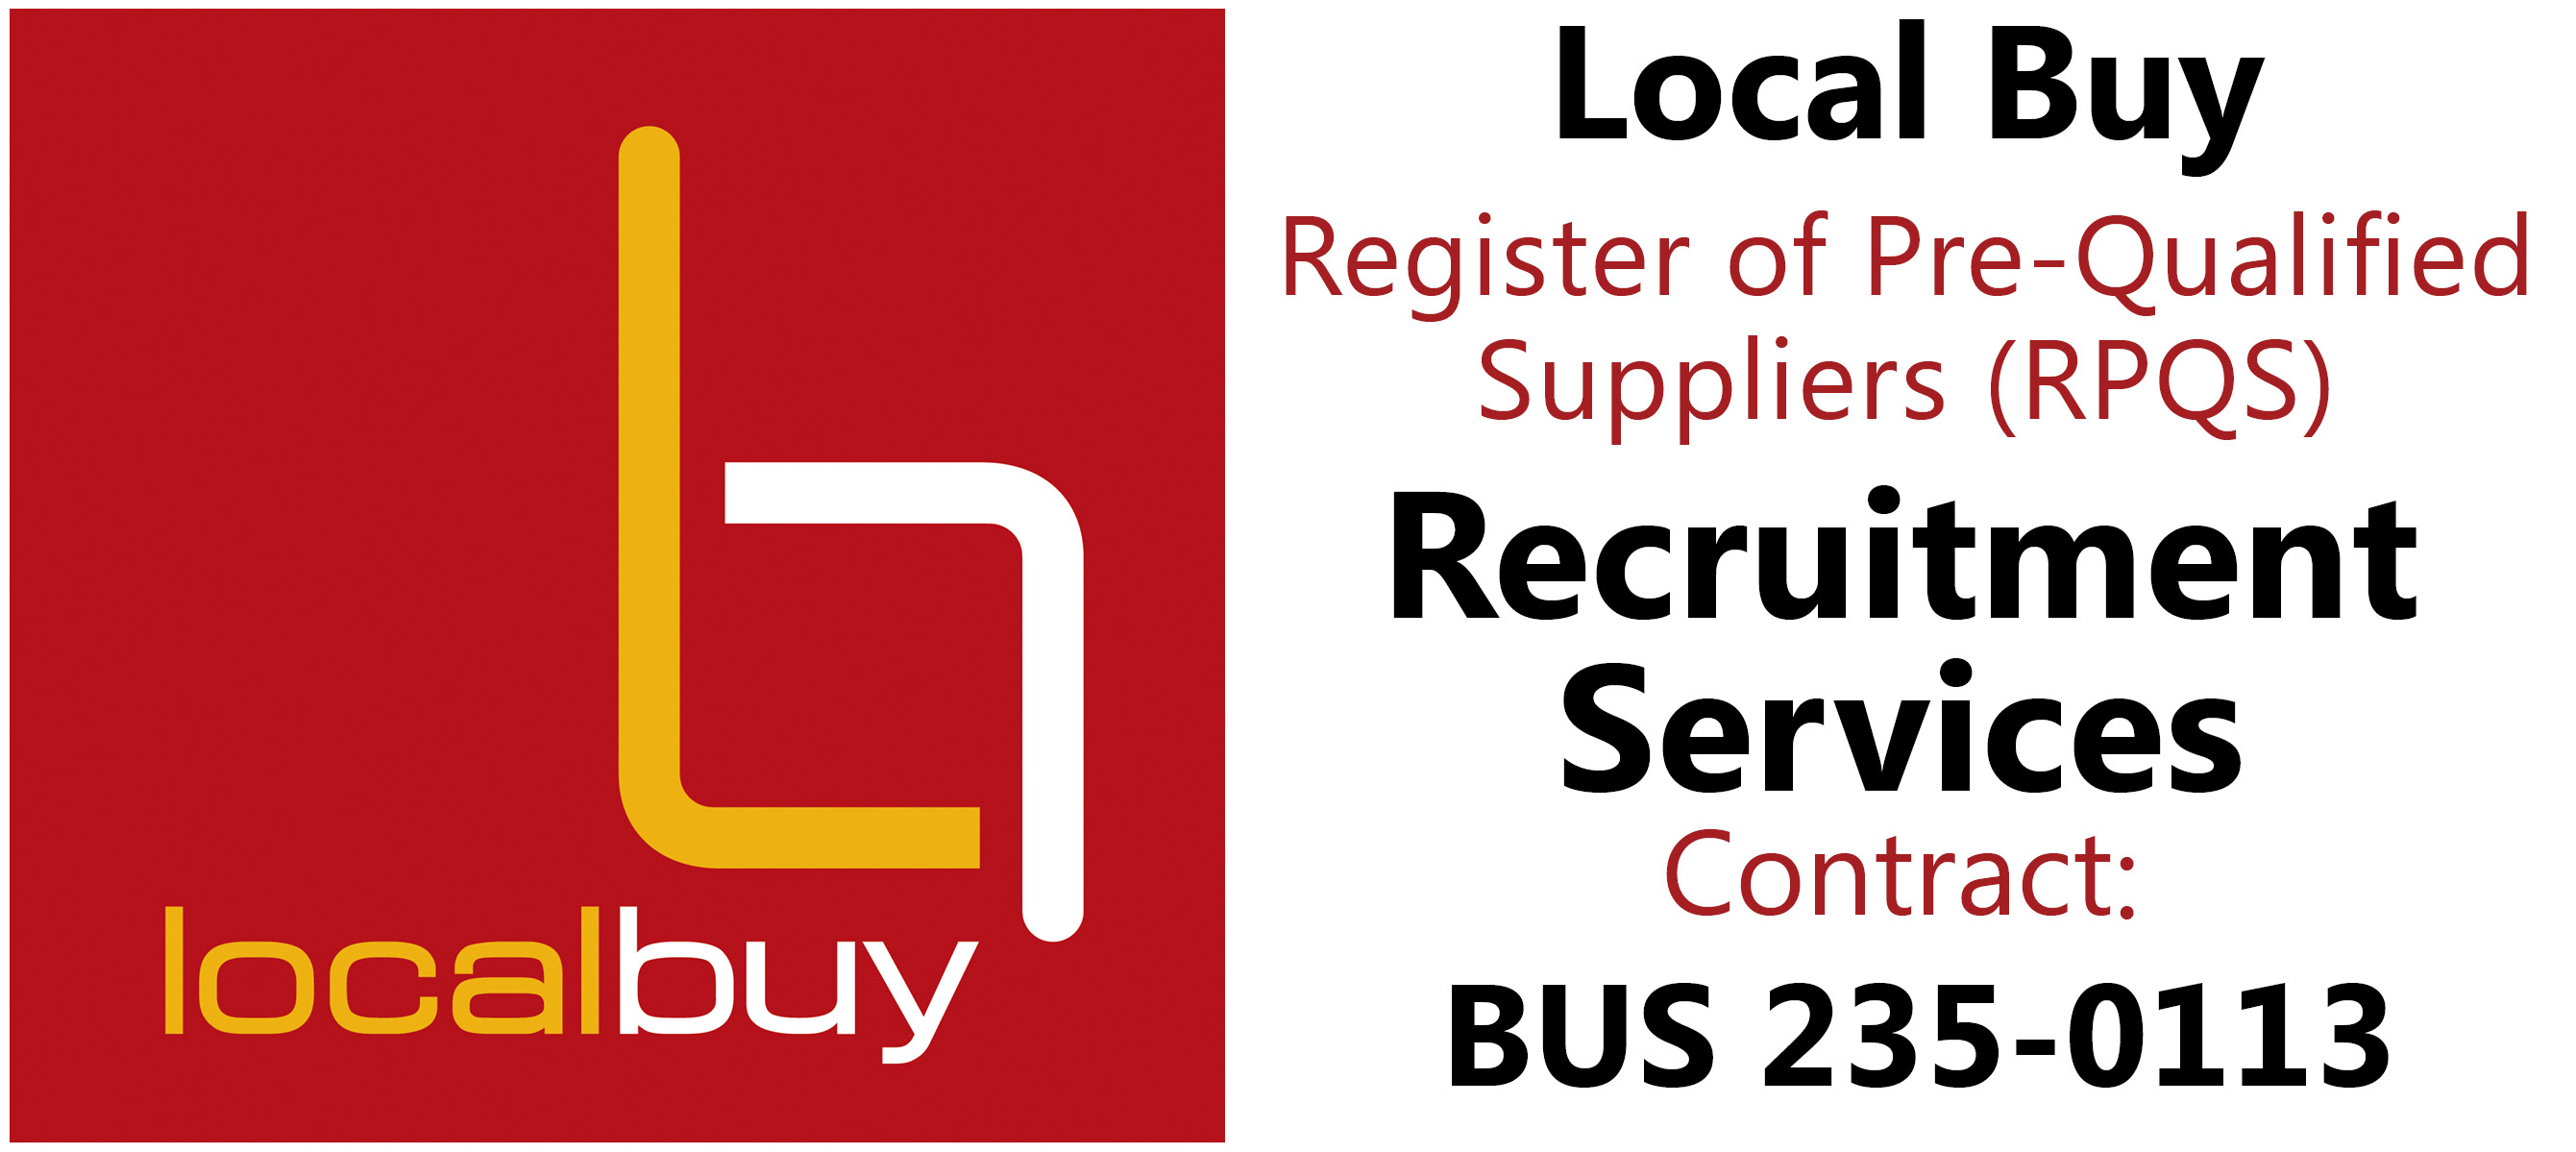 Local Buy Pre-Qualified Supplier Recruitment Services